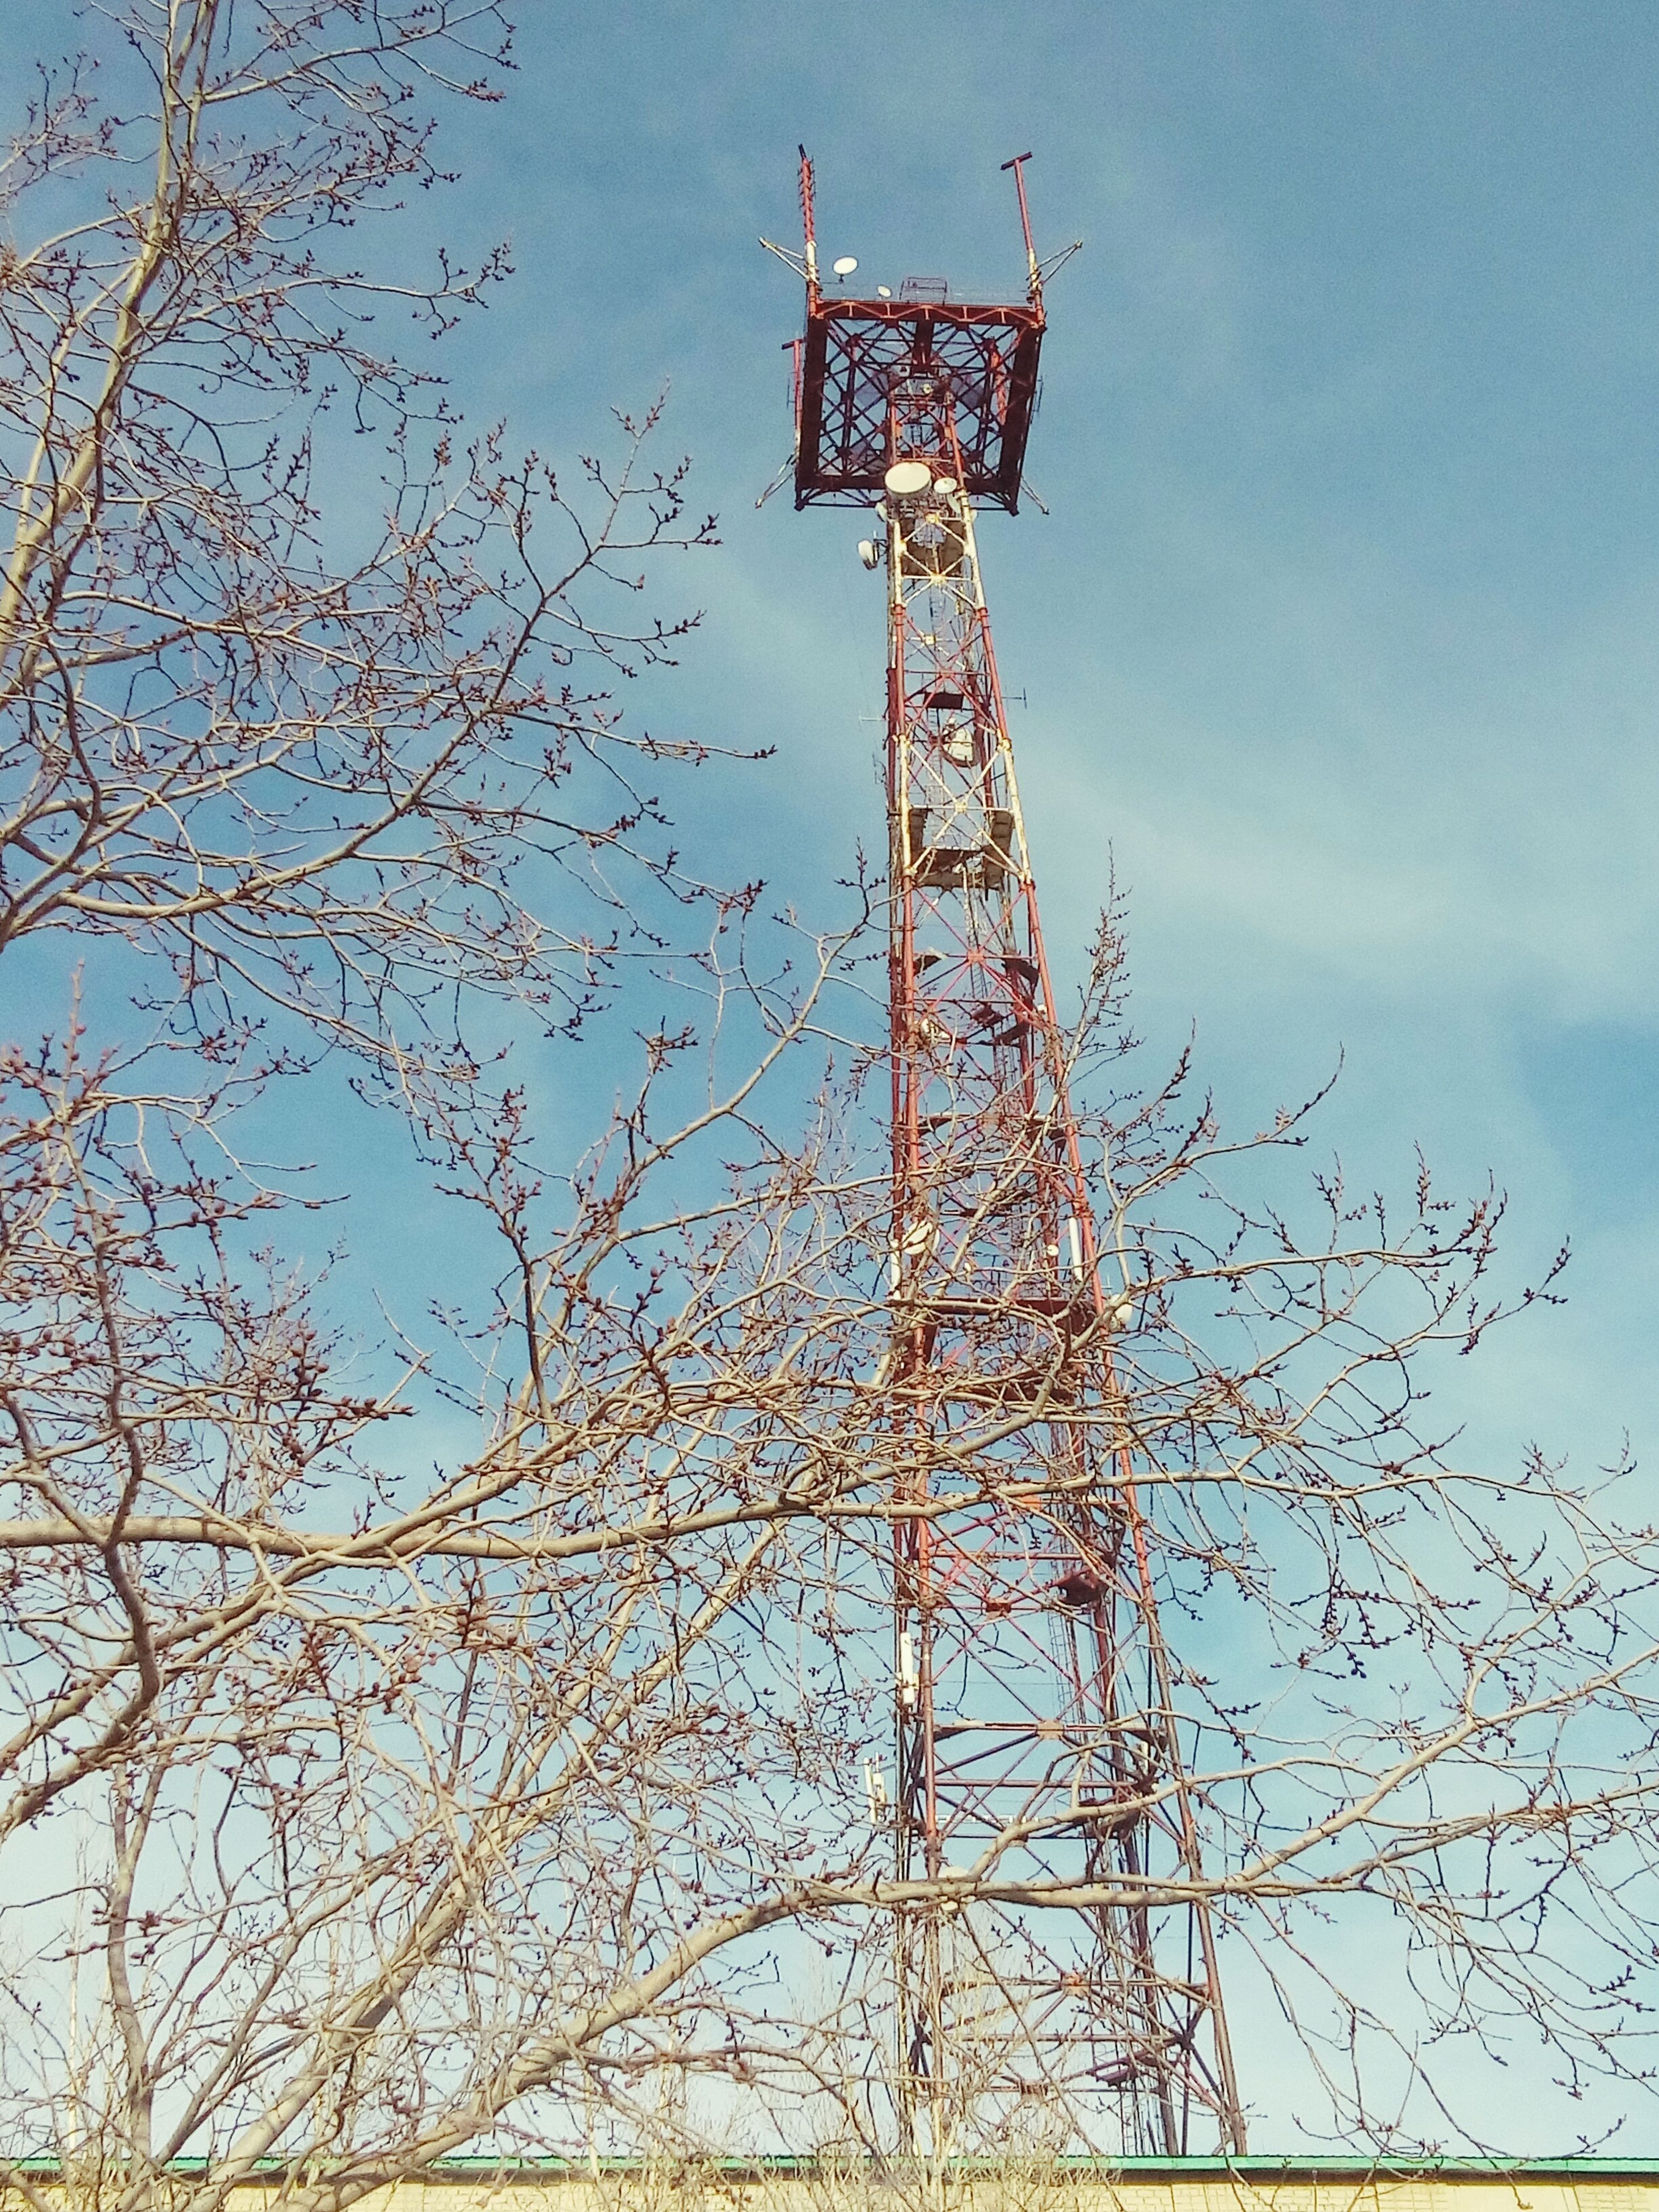 low angle view, tree, tall - high, tower, sky, built structure, architecture, clear sky, branch, communications tower, day, outdoors, no people, bare tree, metal, blue, building exterior, eiffel tower, tall, communication